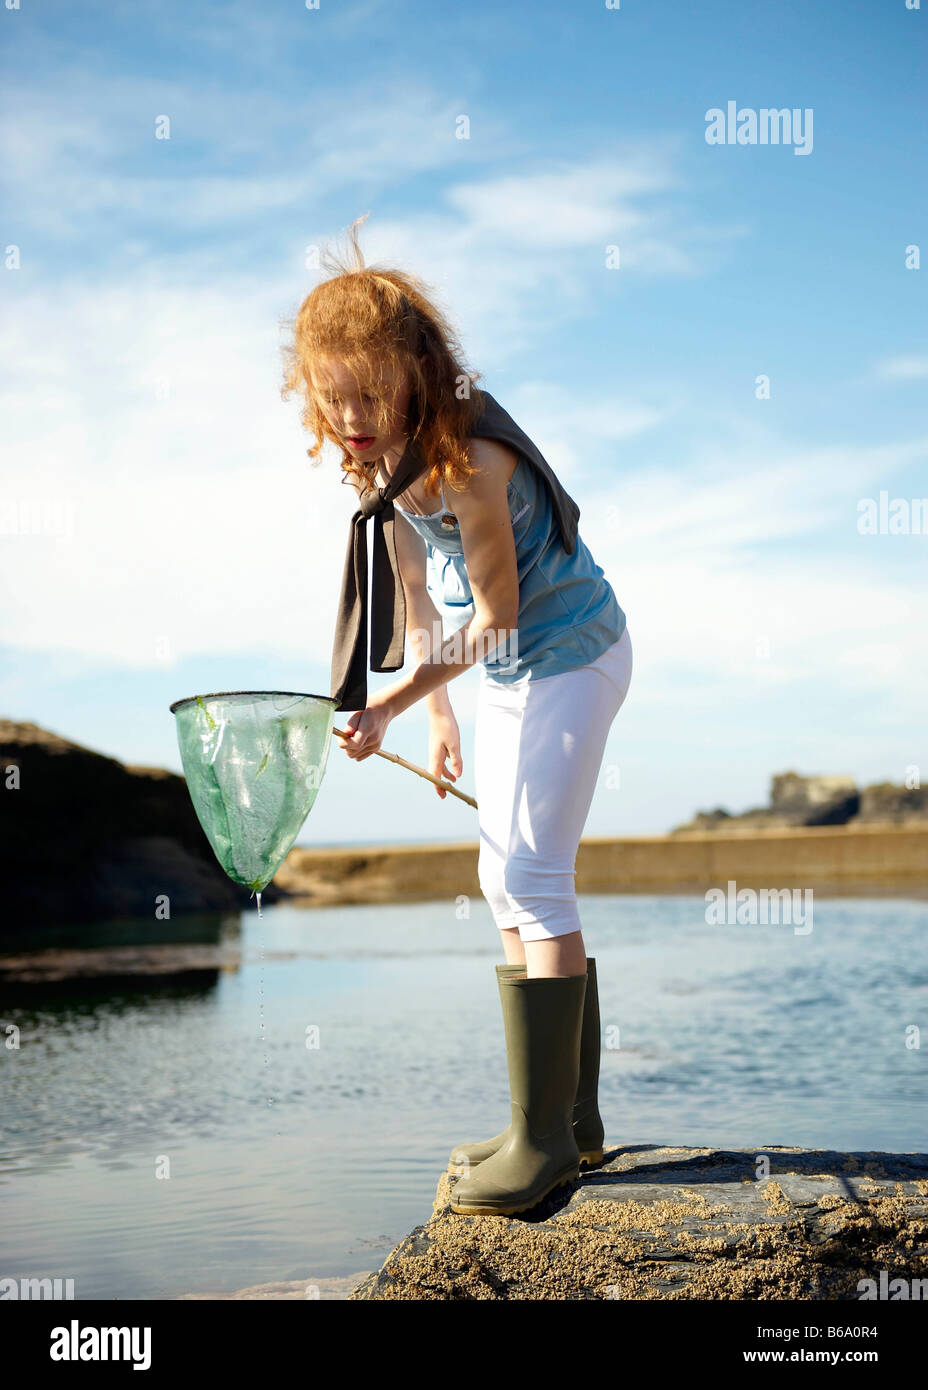 Young girl looking in net at rock pool - Stock Image